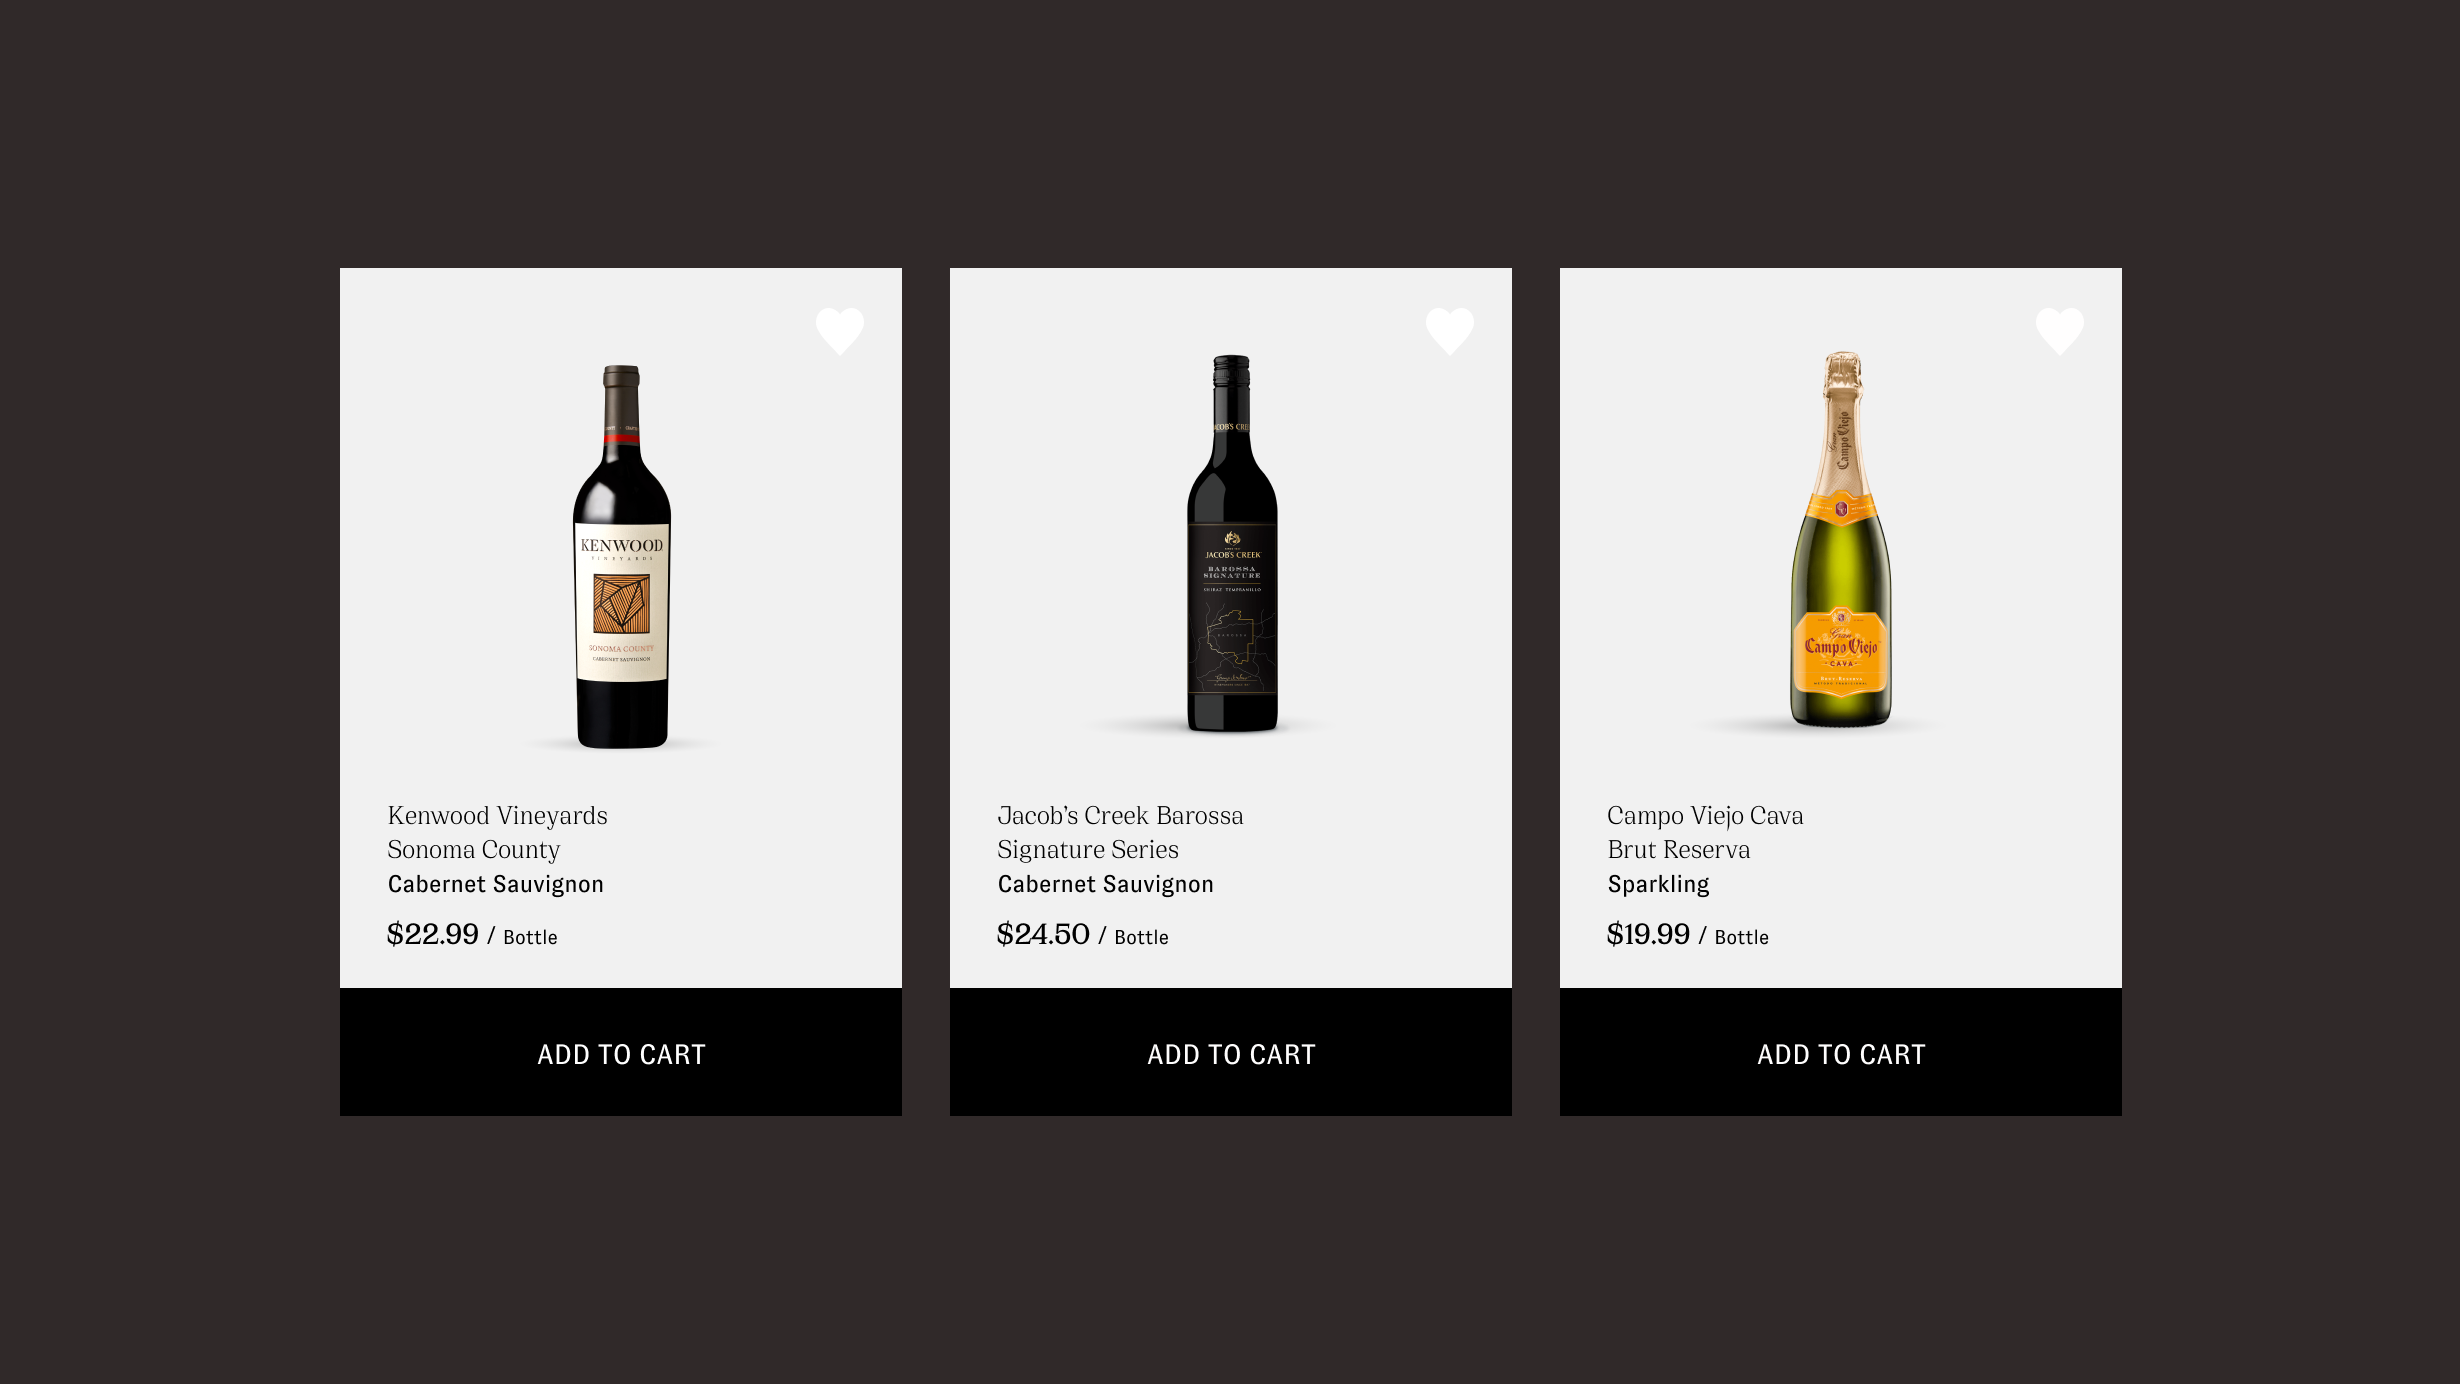 Henry & Paul website screenshot showing various wine product cards